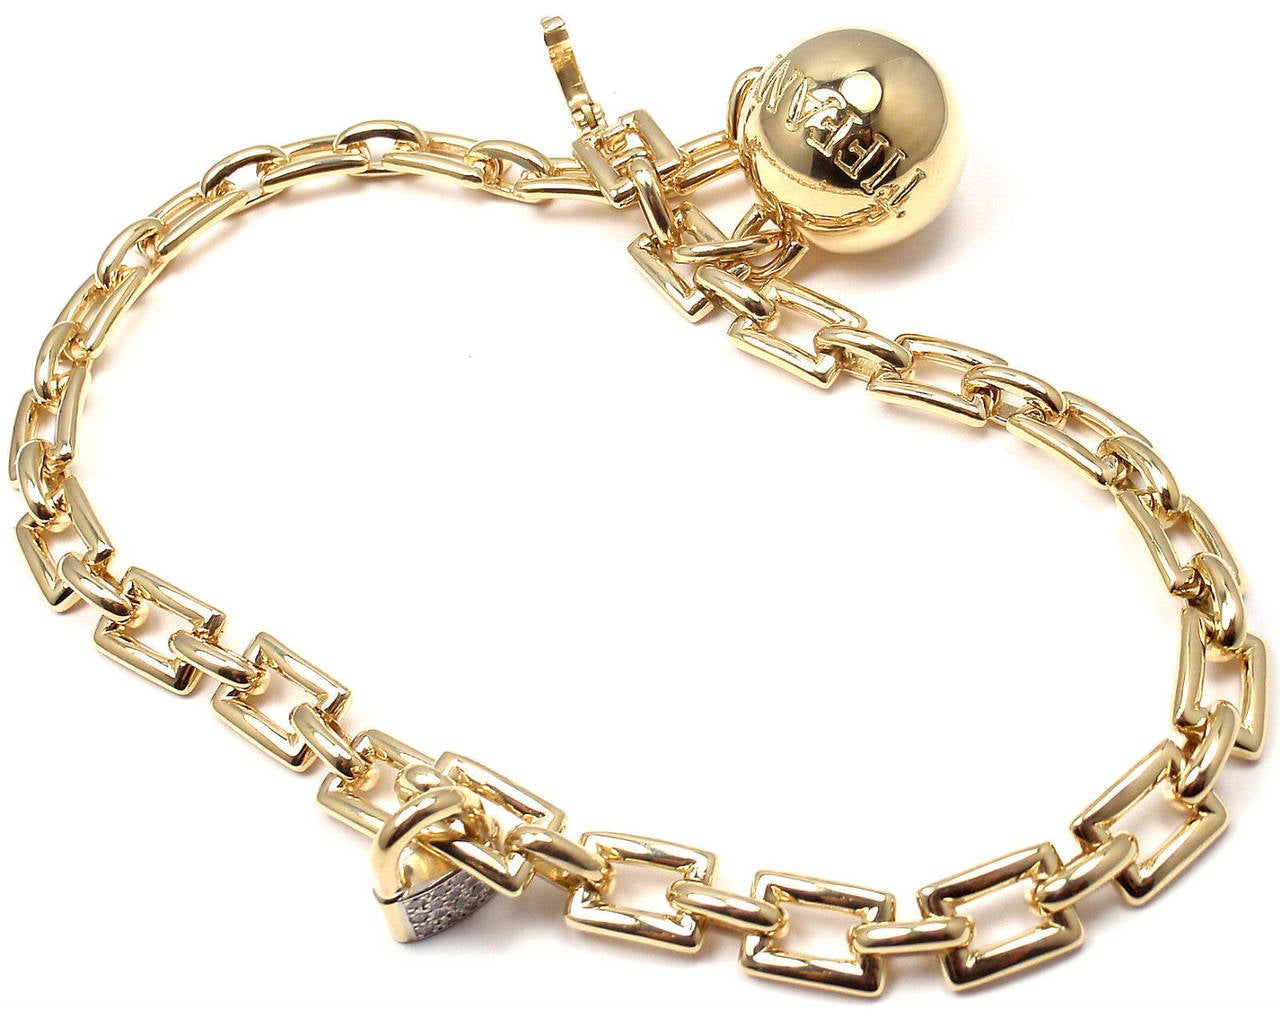 Tiffany & Co. Diamond Ball and Chain Yellow Gold Link Bracelet For Sale 4